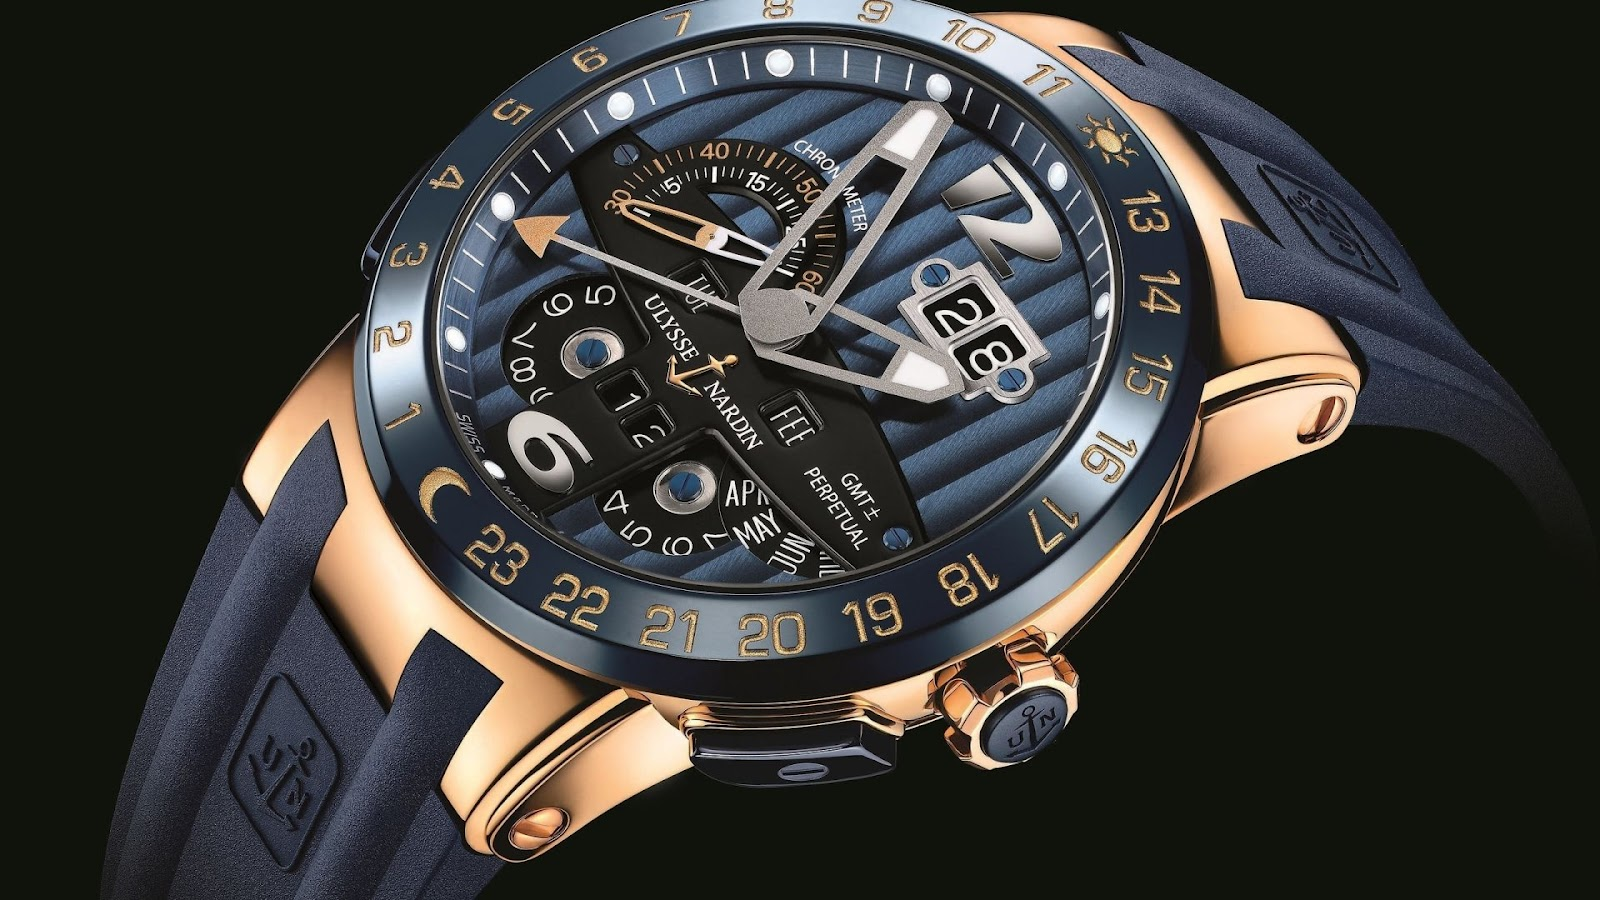 Ulysse Nardin Sport Watch